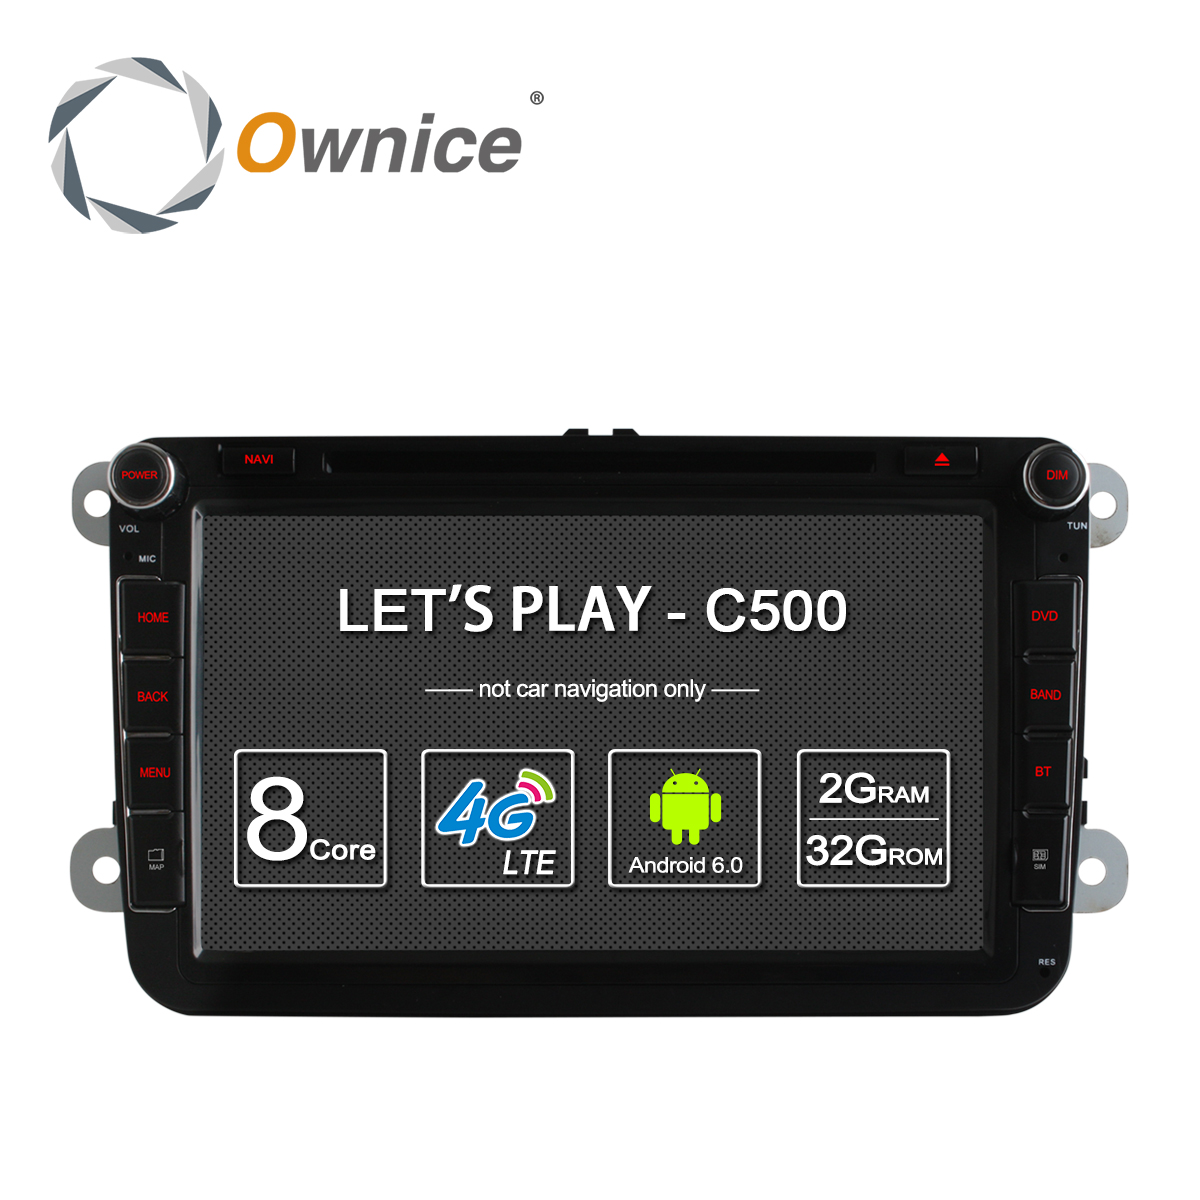 4G SIM LTE Network Ownice C500 Octa 8 Core Android 6.0 2G RAM 2 Din Car DVD GPS Navi Radio Player For VW Skoda Octavia 2 автомобильный dvd плеер joyous kd 7 800 480 2 din 4 4 gps navi toyota rav4 4 4 dvd dual core rds wifi 3g